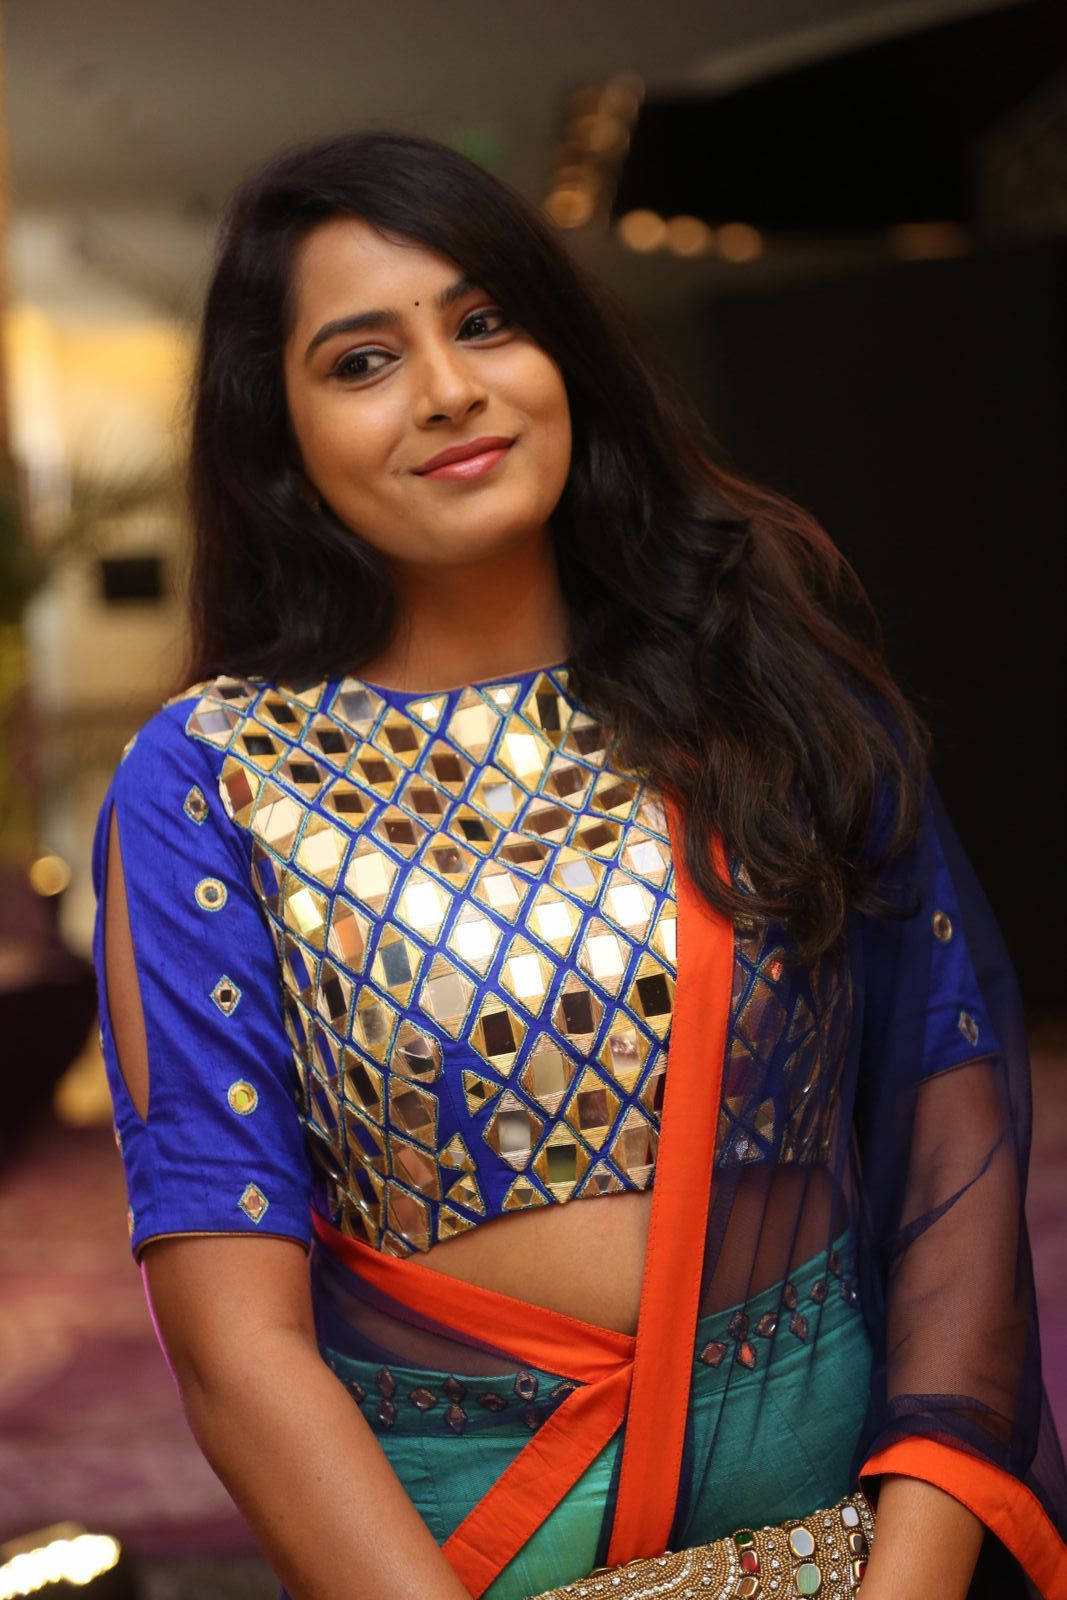 himaza Brand New Photo Stills of Tollywood Actress Himaza | South Actresses Himaza 66